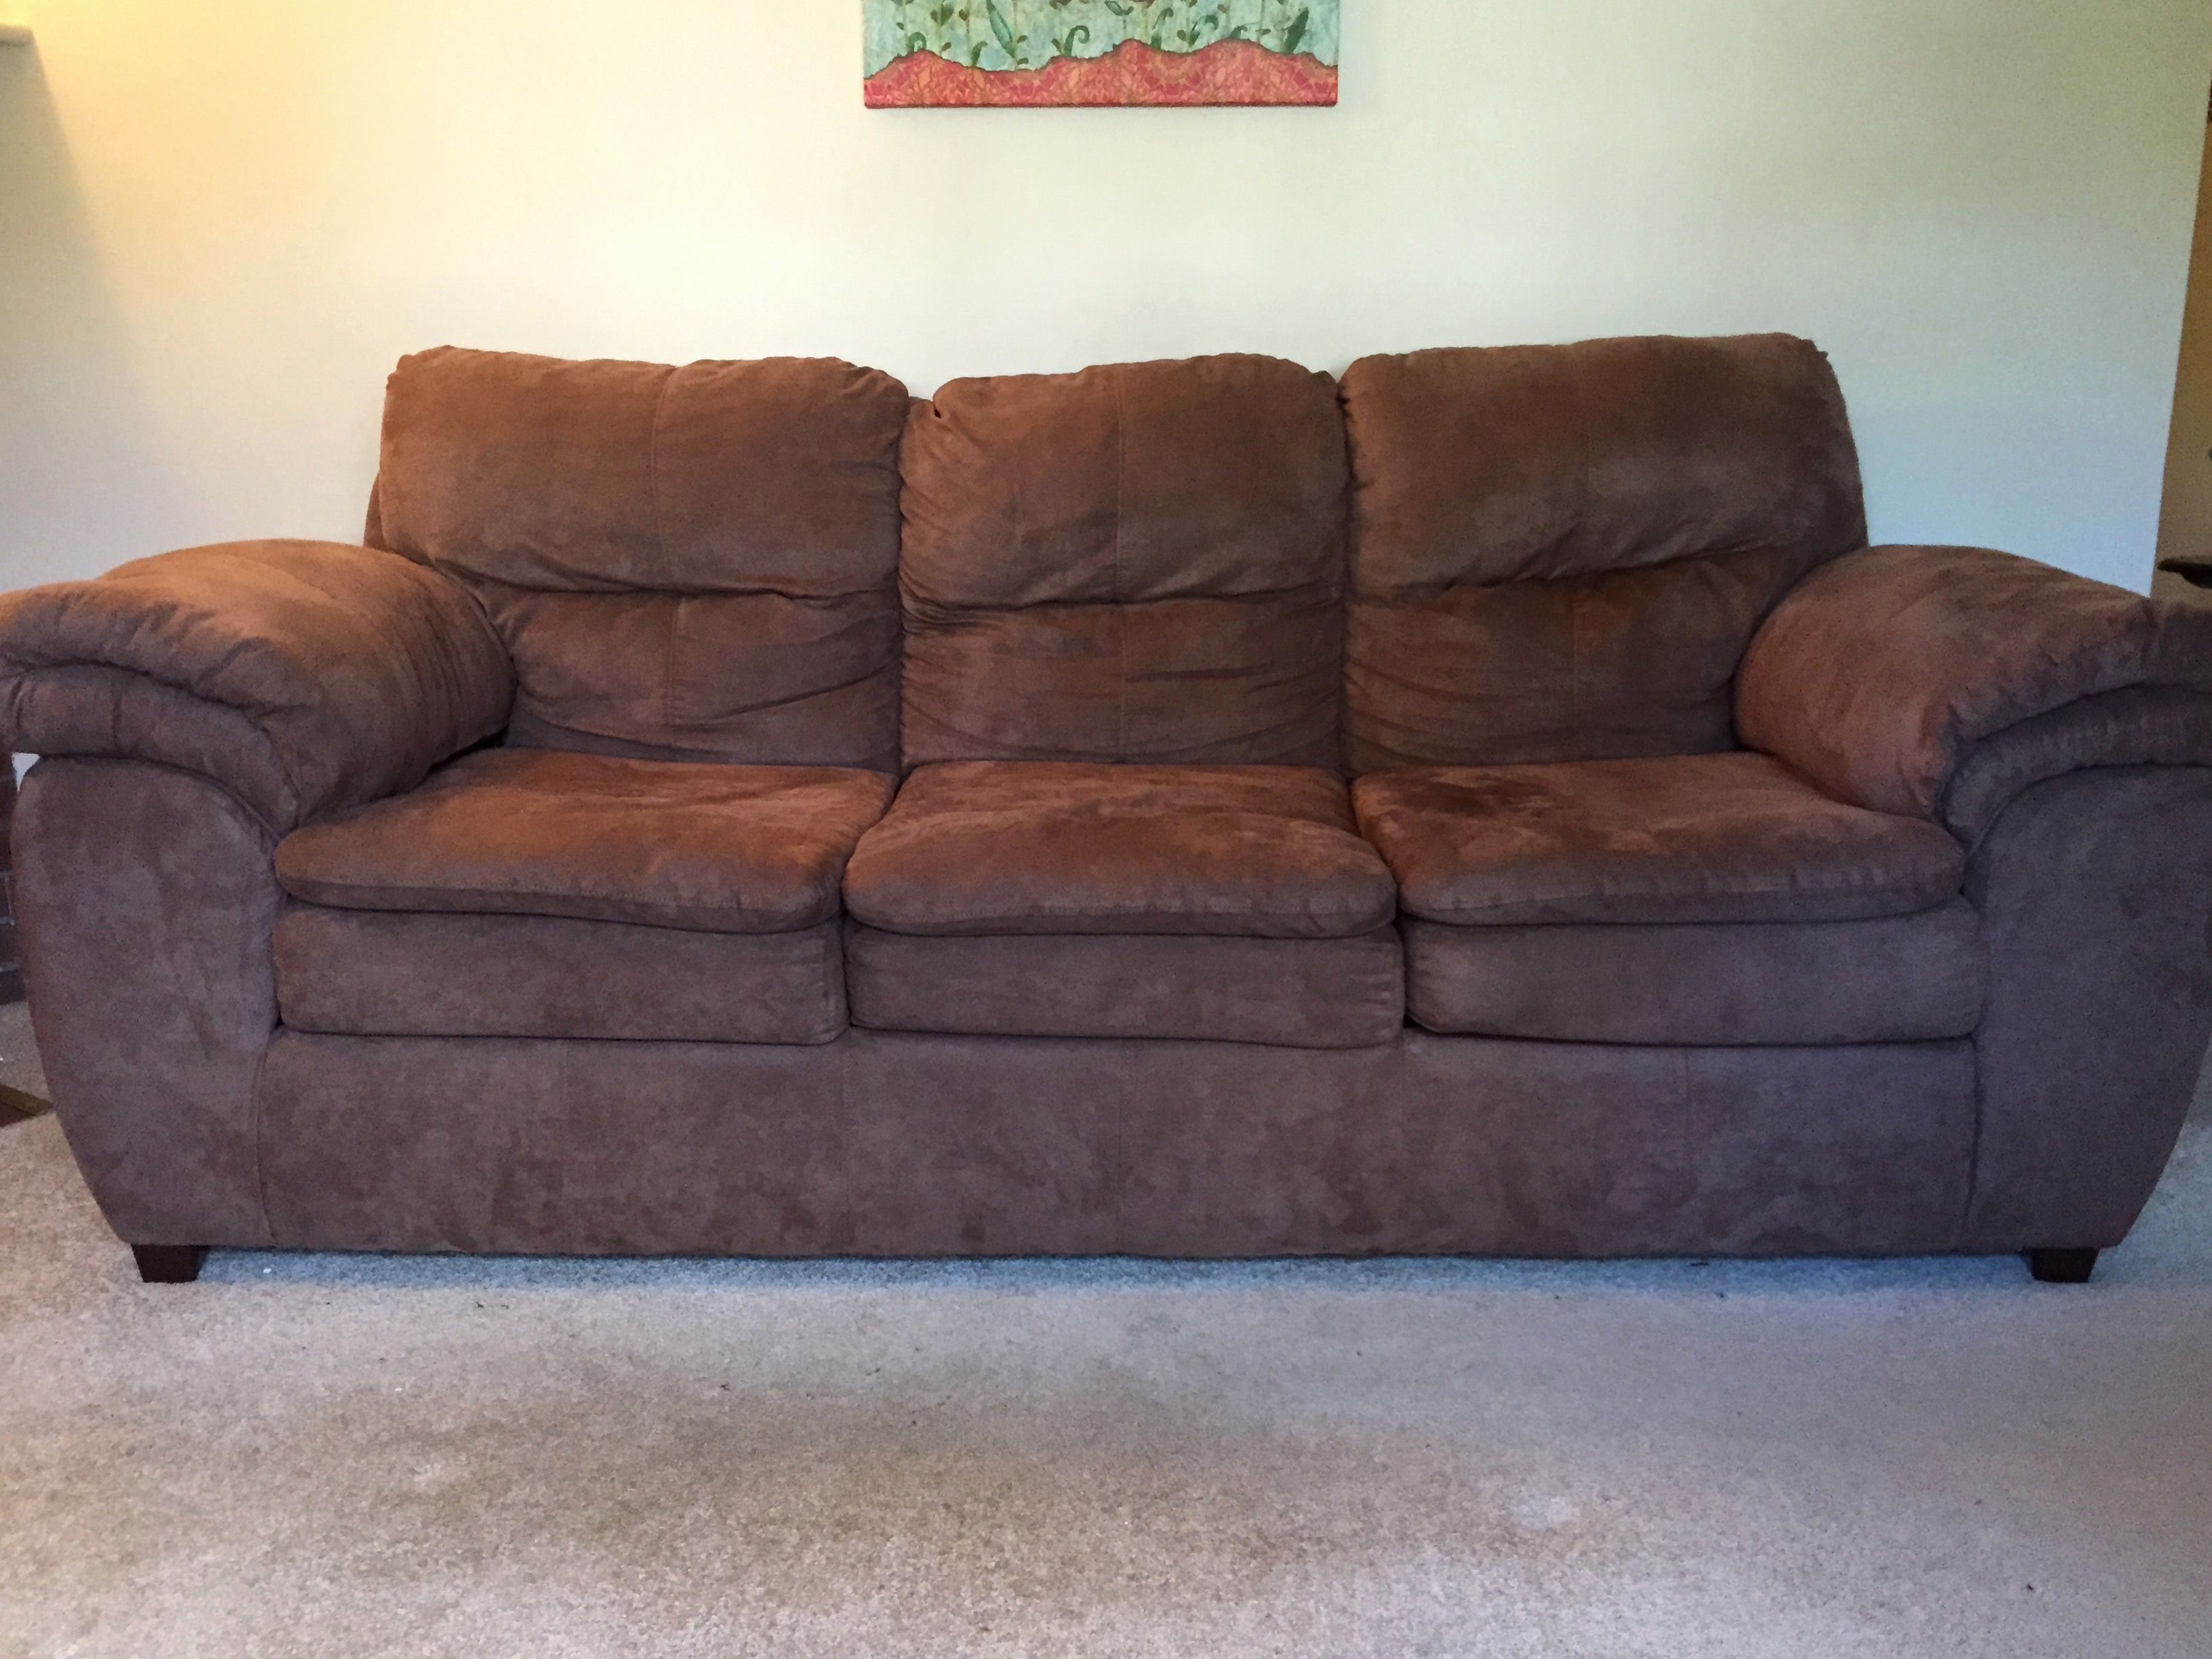 Awesome Microfiber Sofas For Sale Furniture Lovely Brown